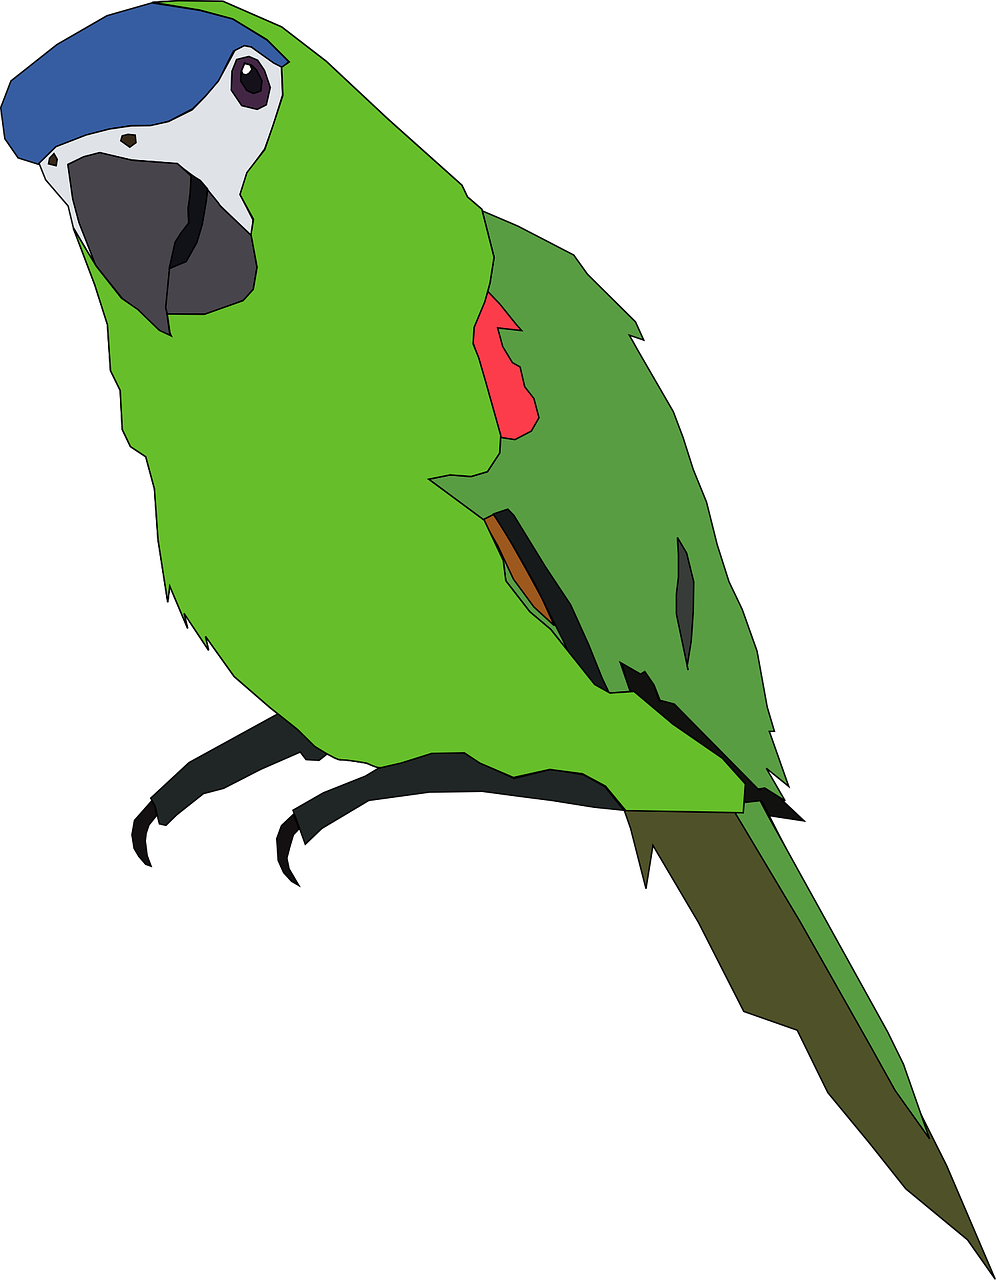 Free image on pixabay. Forest clipart parrot vector